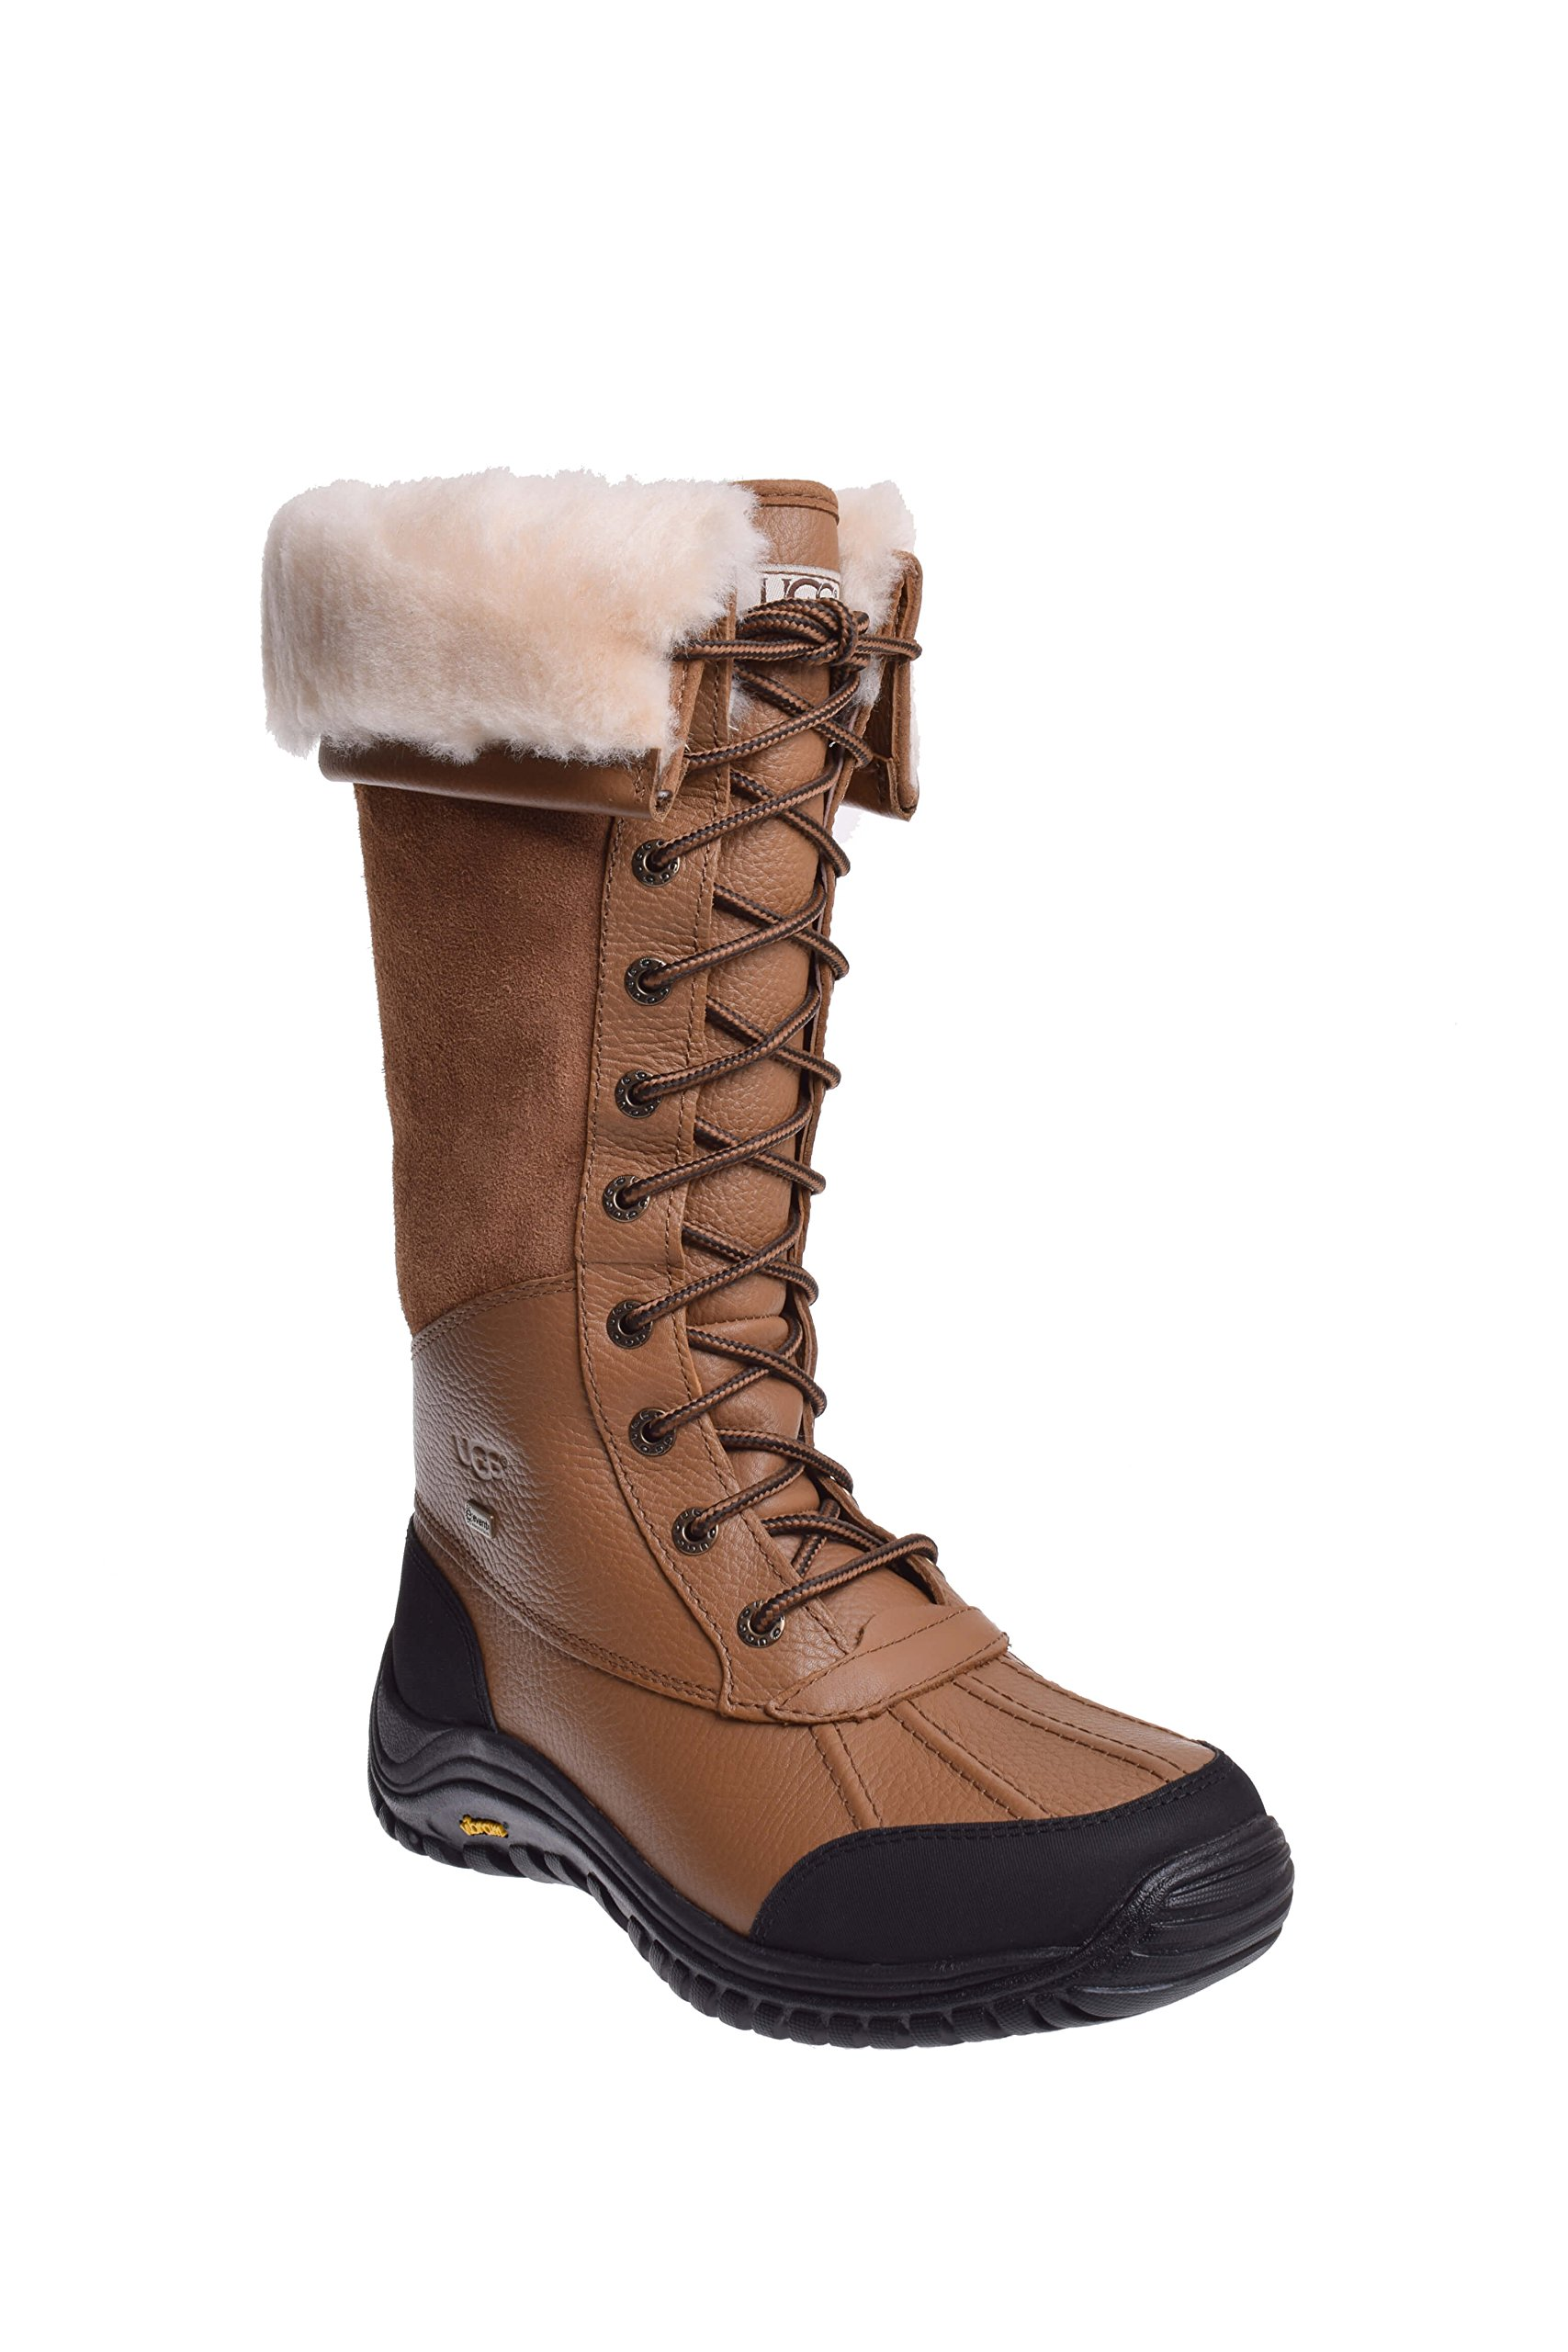 UGG Women's Adirondack Tall Snow Boot, Otter, 9 M US